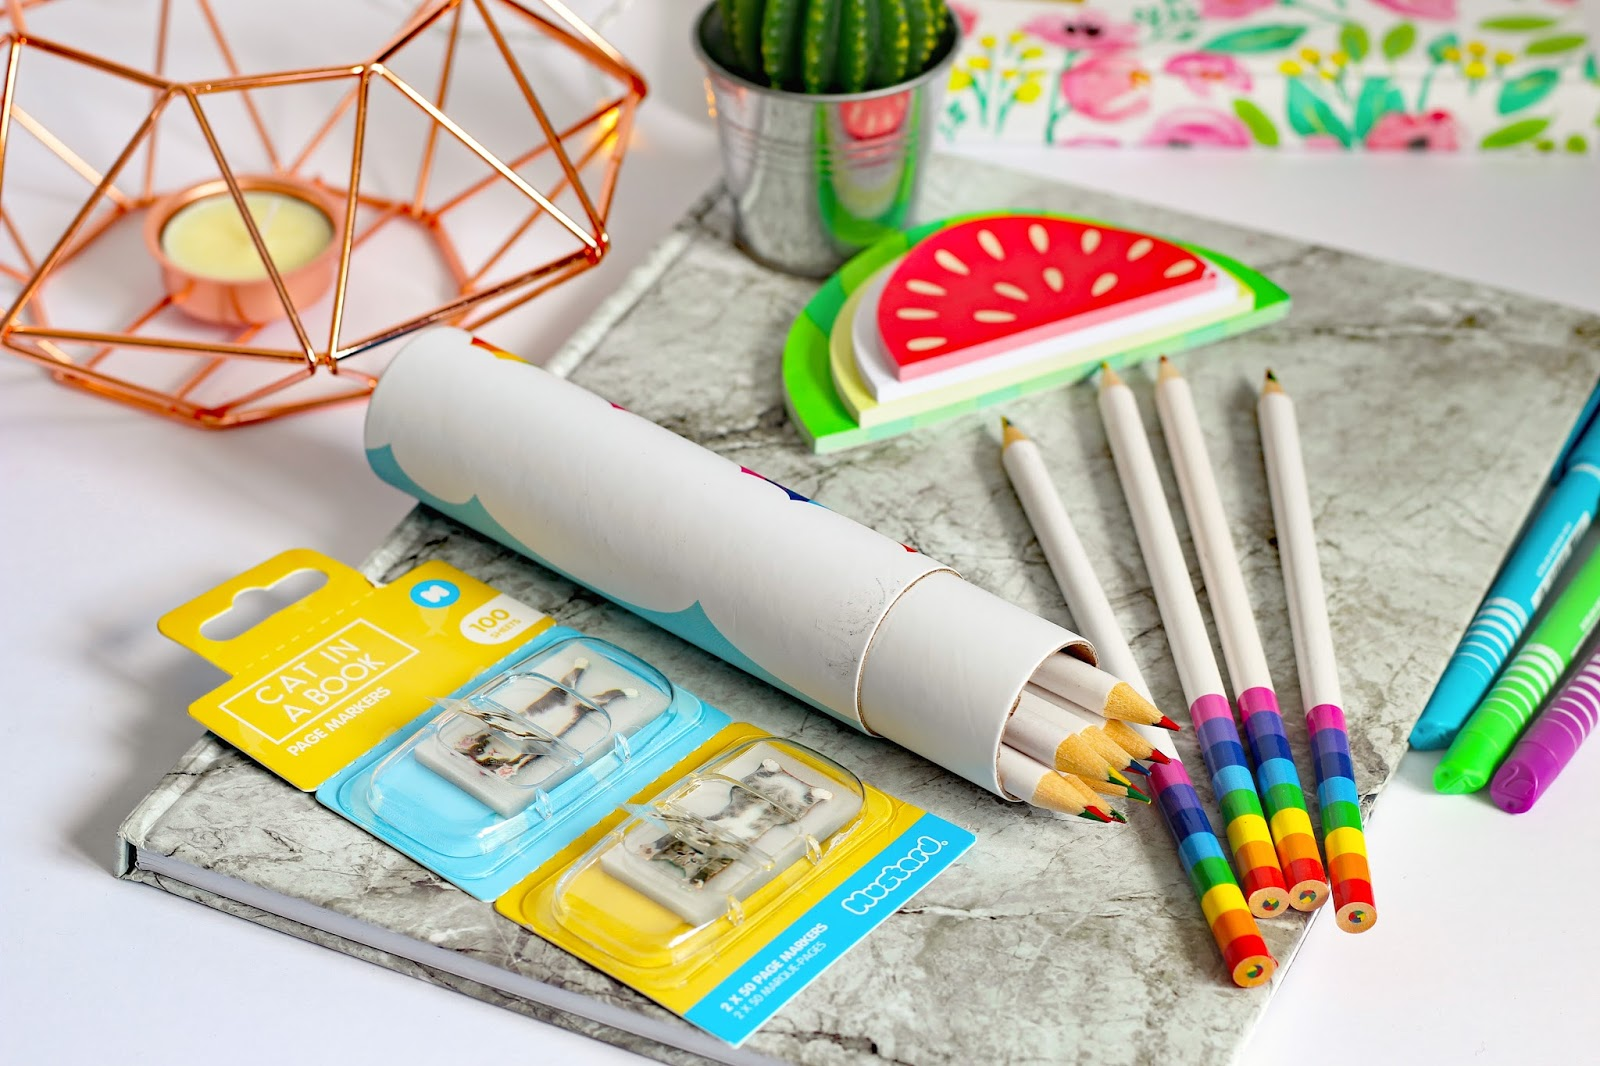 Why I Love Stationery And How It Benefits My Mental Health national stationery week notebooks gifts cute funky cool cheep mustard gifts pens paper